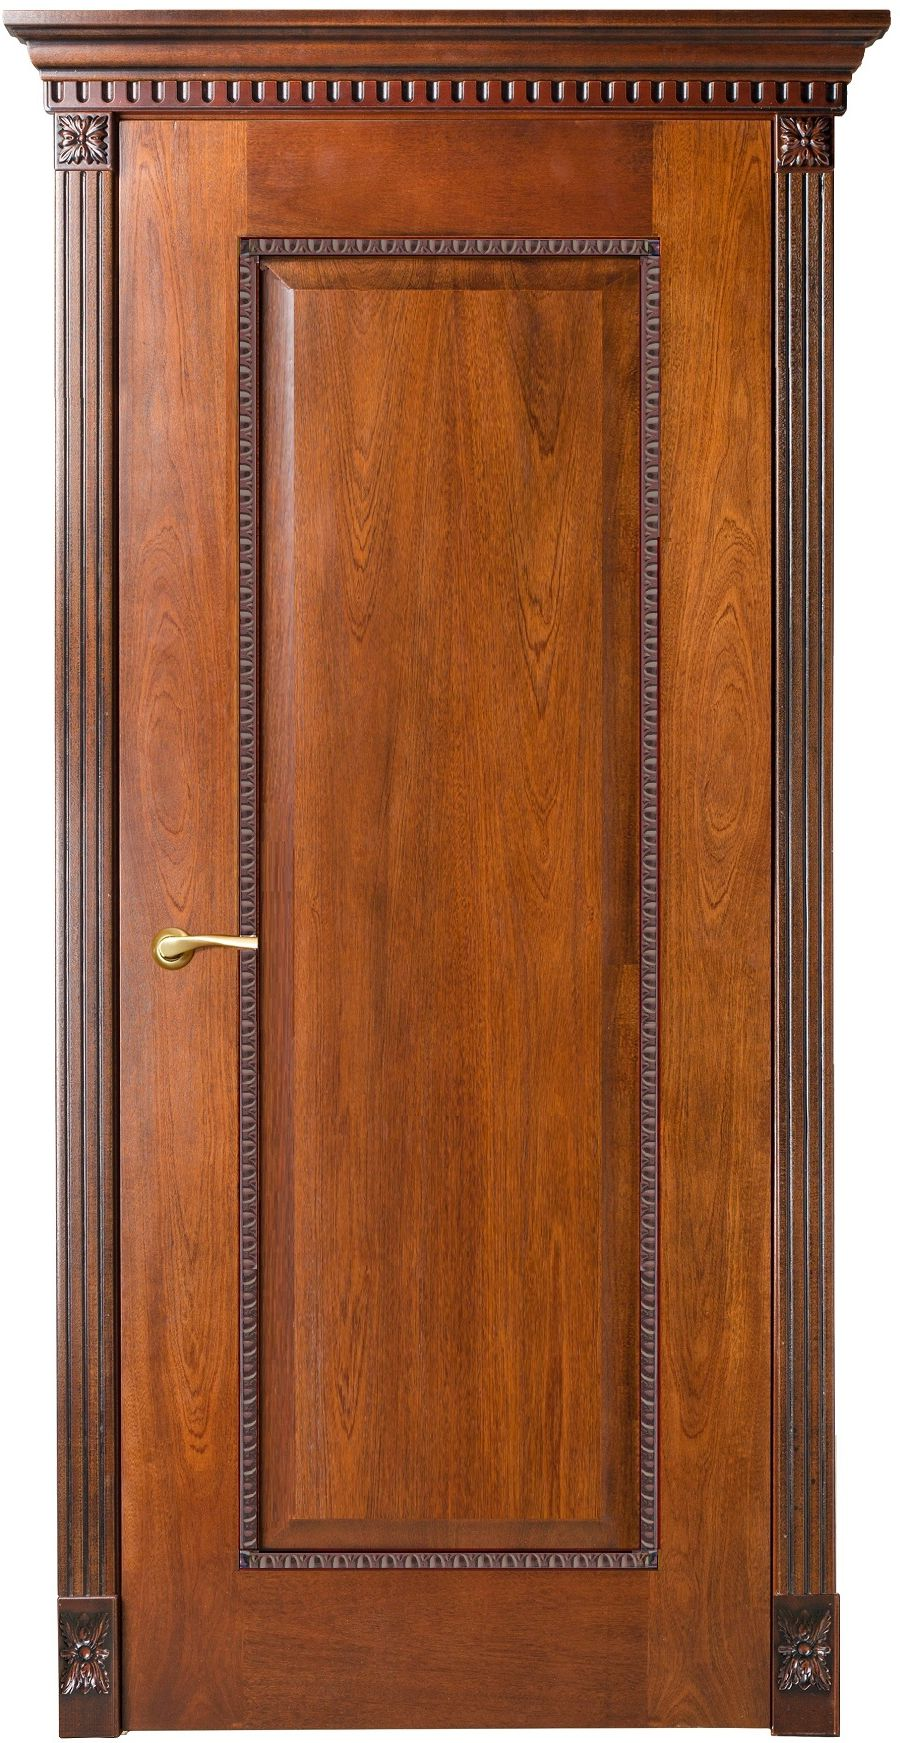 Interior Doors Styles Matching Of Dominant Designing Style Of A Door Leaf Through Examples